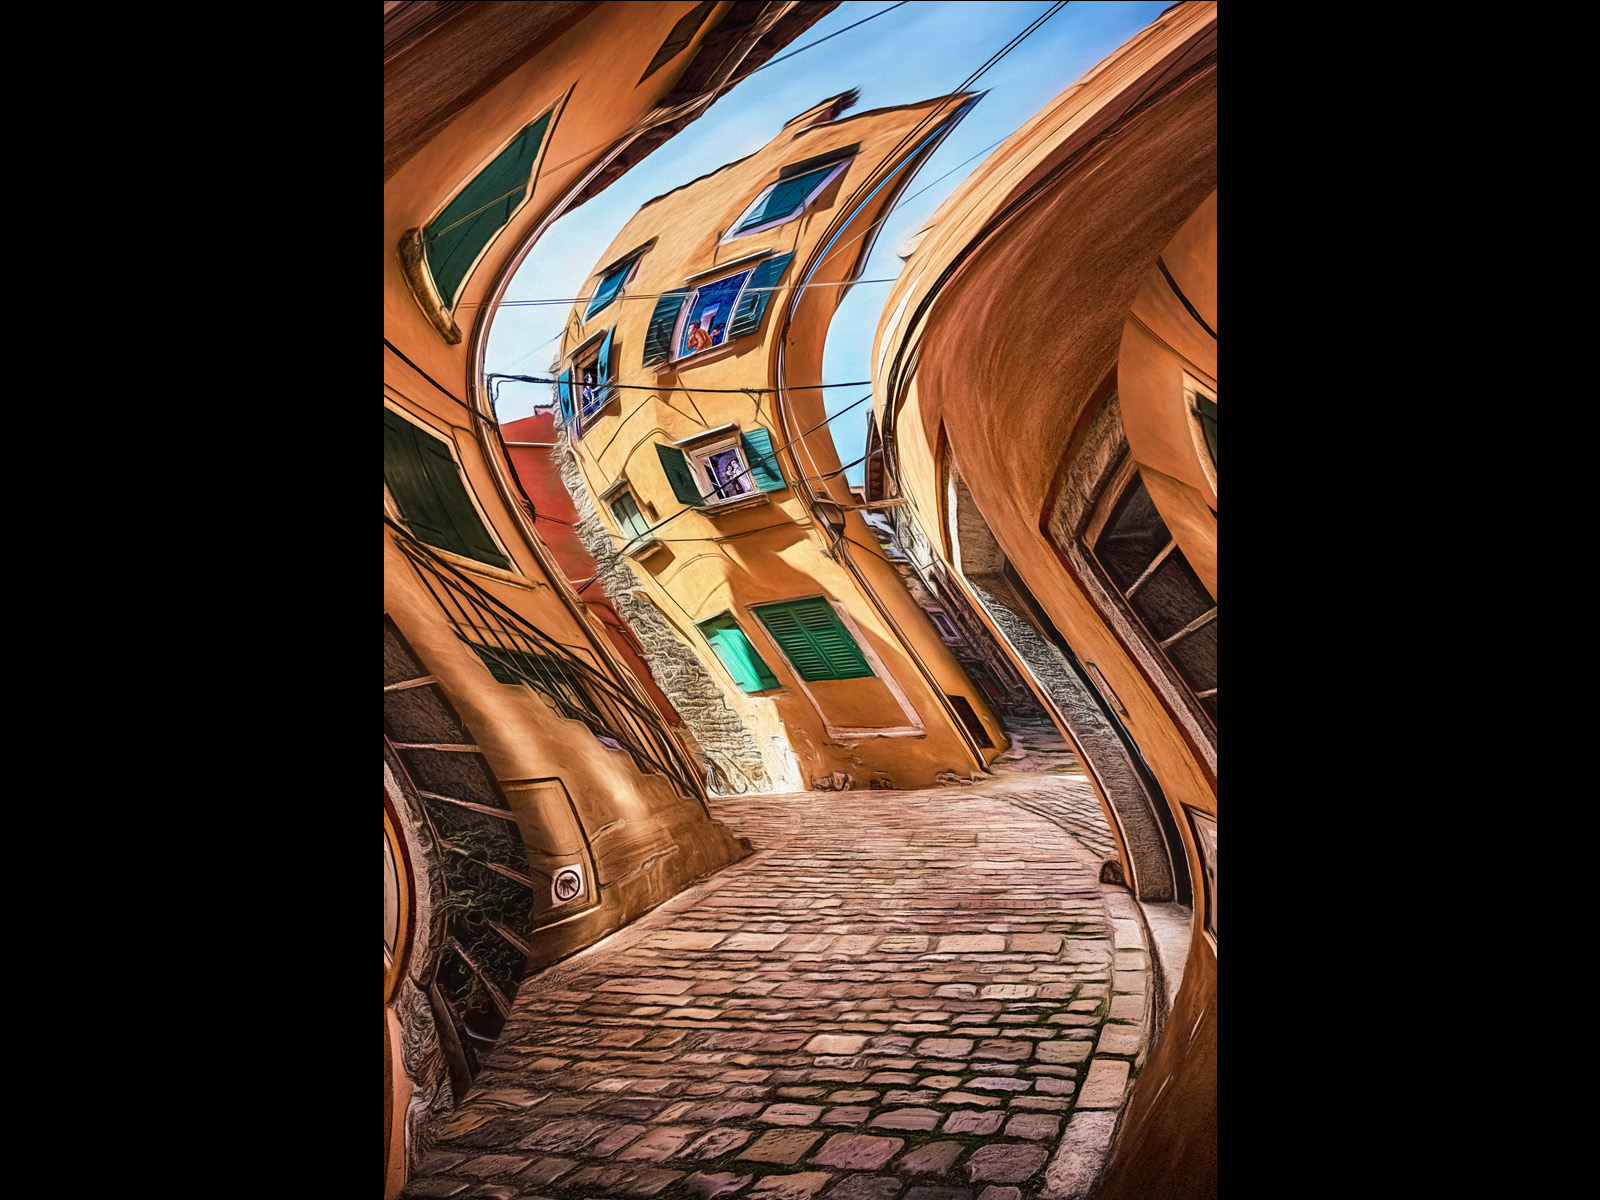 2ND WINDING ALLEY BY COLIN STACEY DIV1 COLOUR